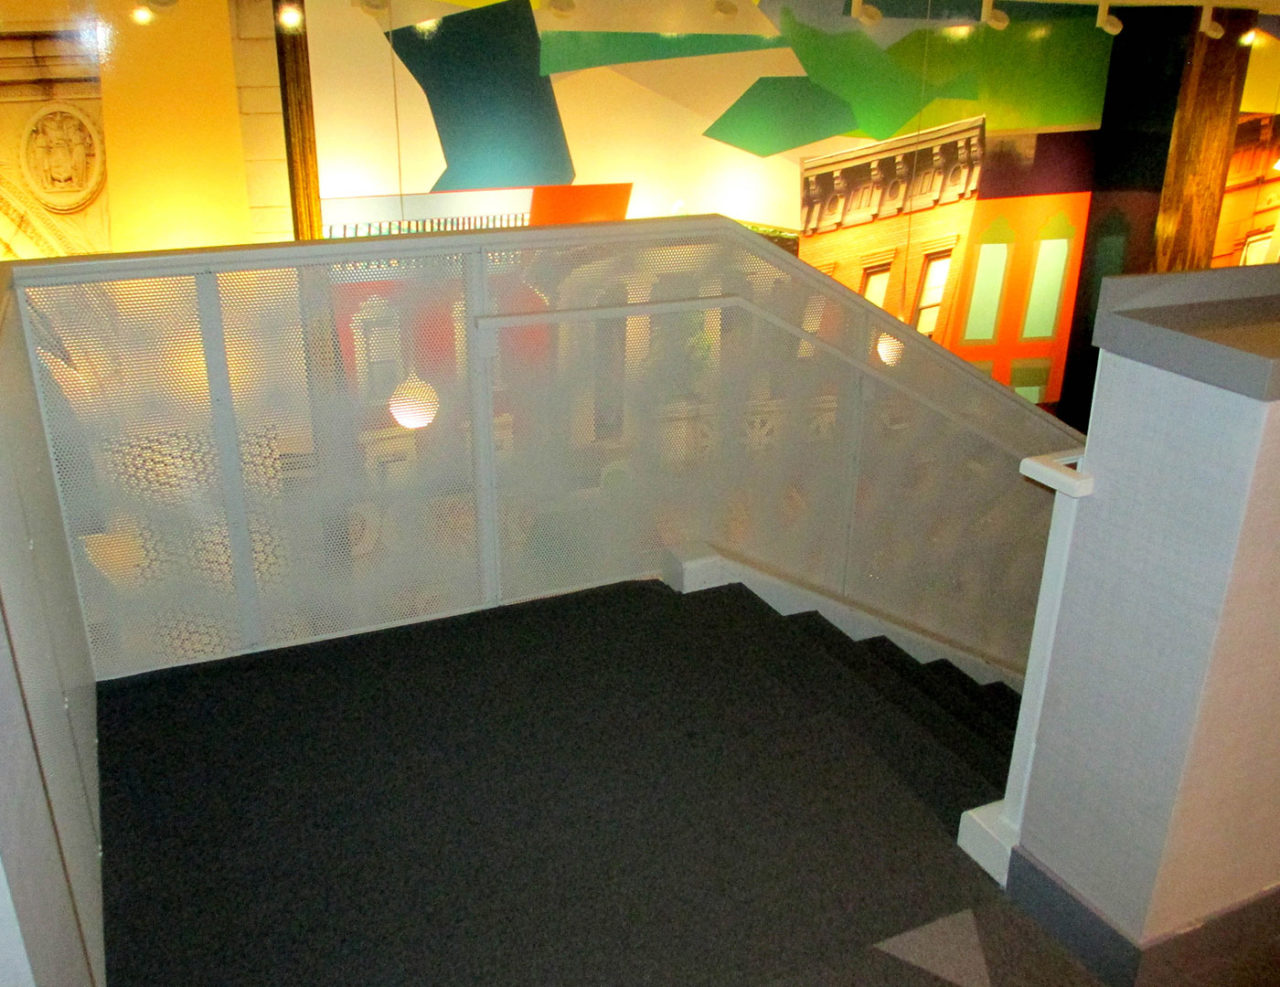 Custom railing systems with aluminum perforated panel infills